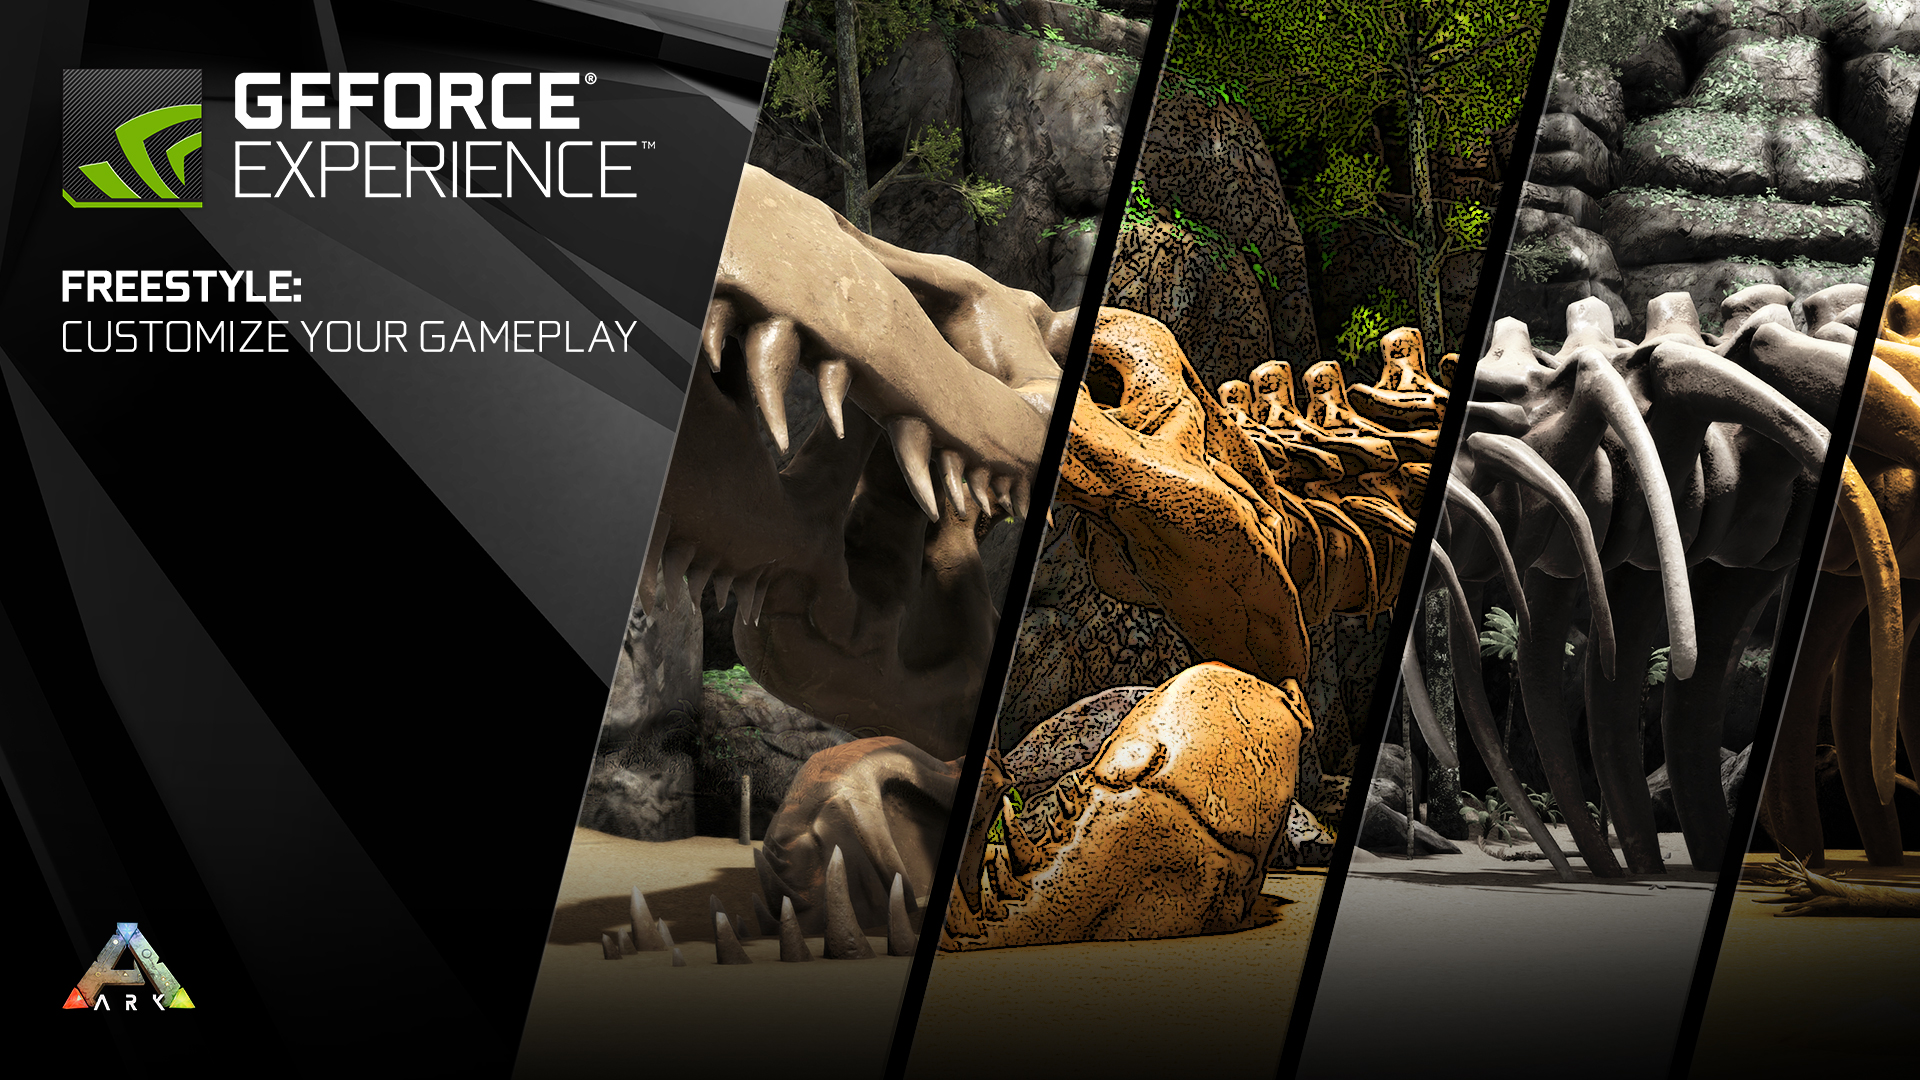 GeForce Experience Nvidia CES 2018